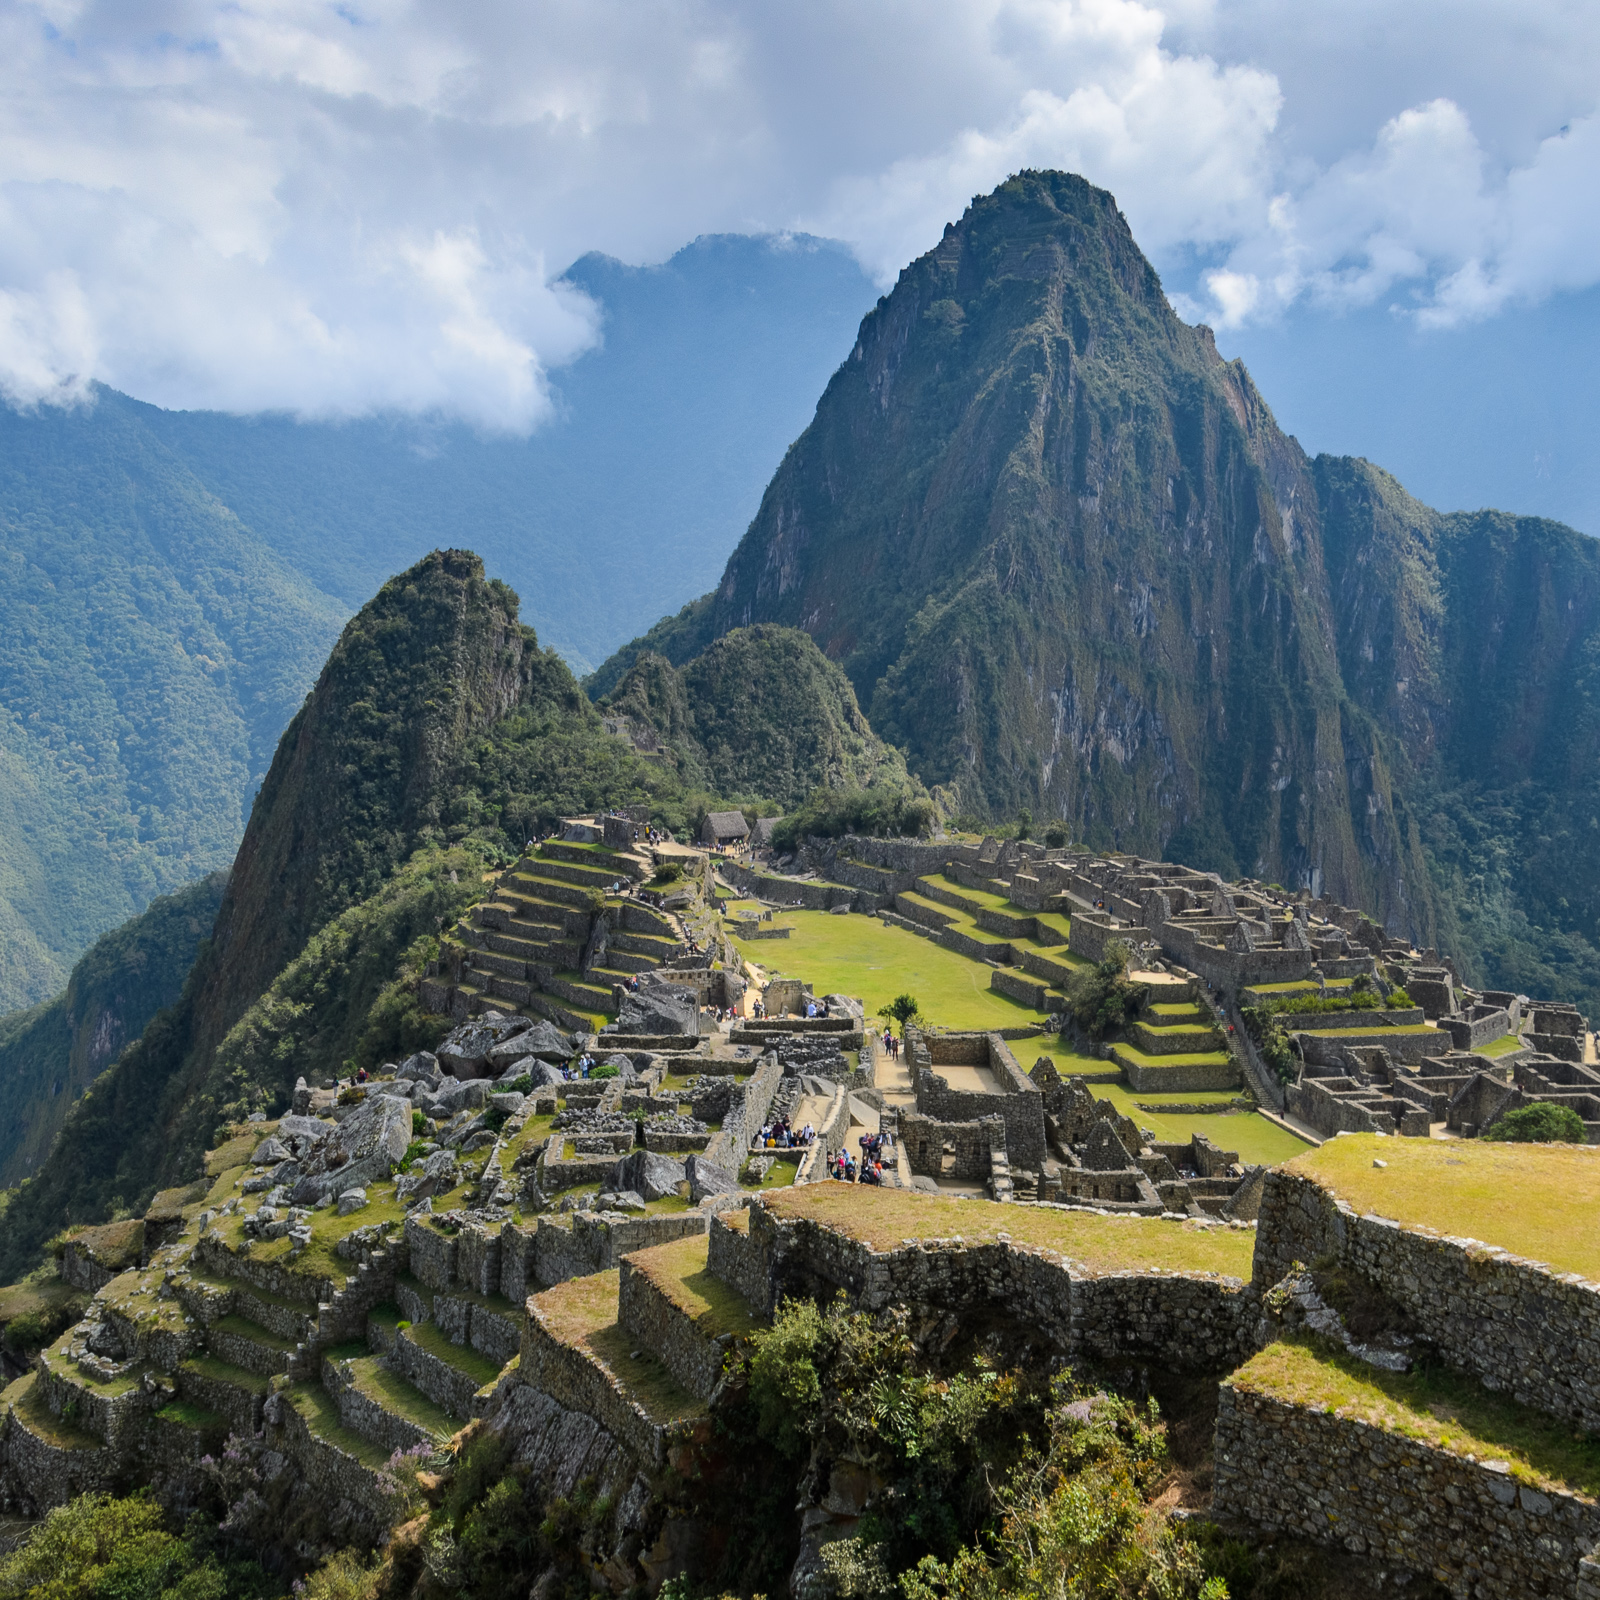 Useful Notes on Getting to Machu Picchu